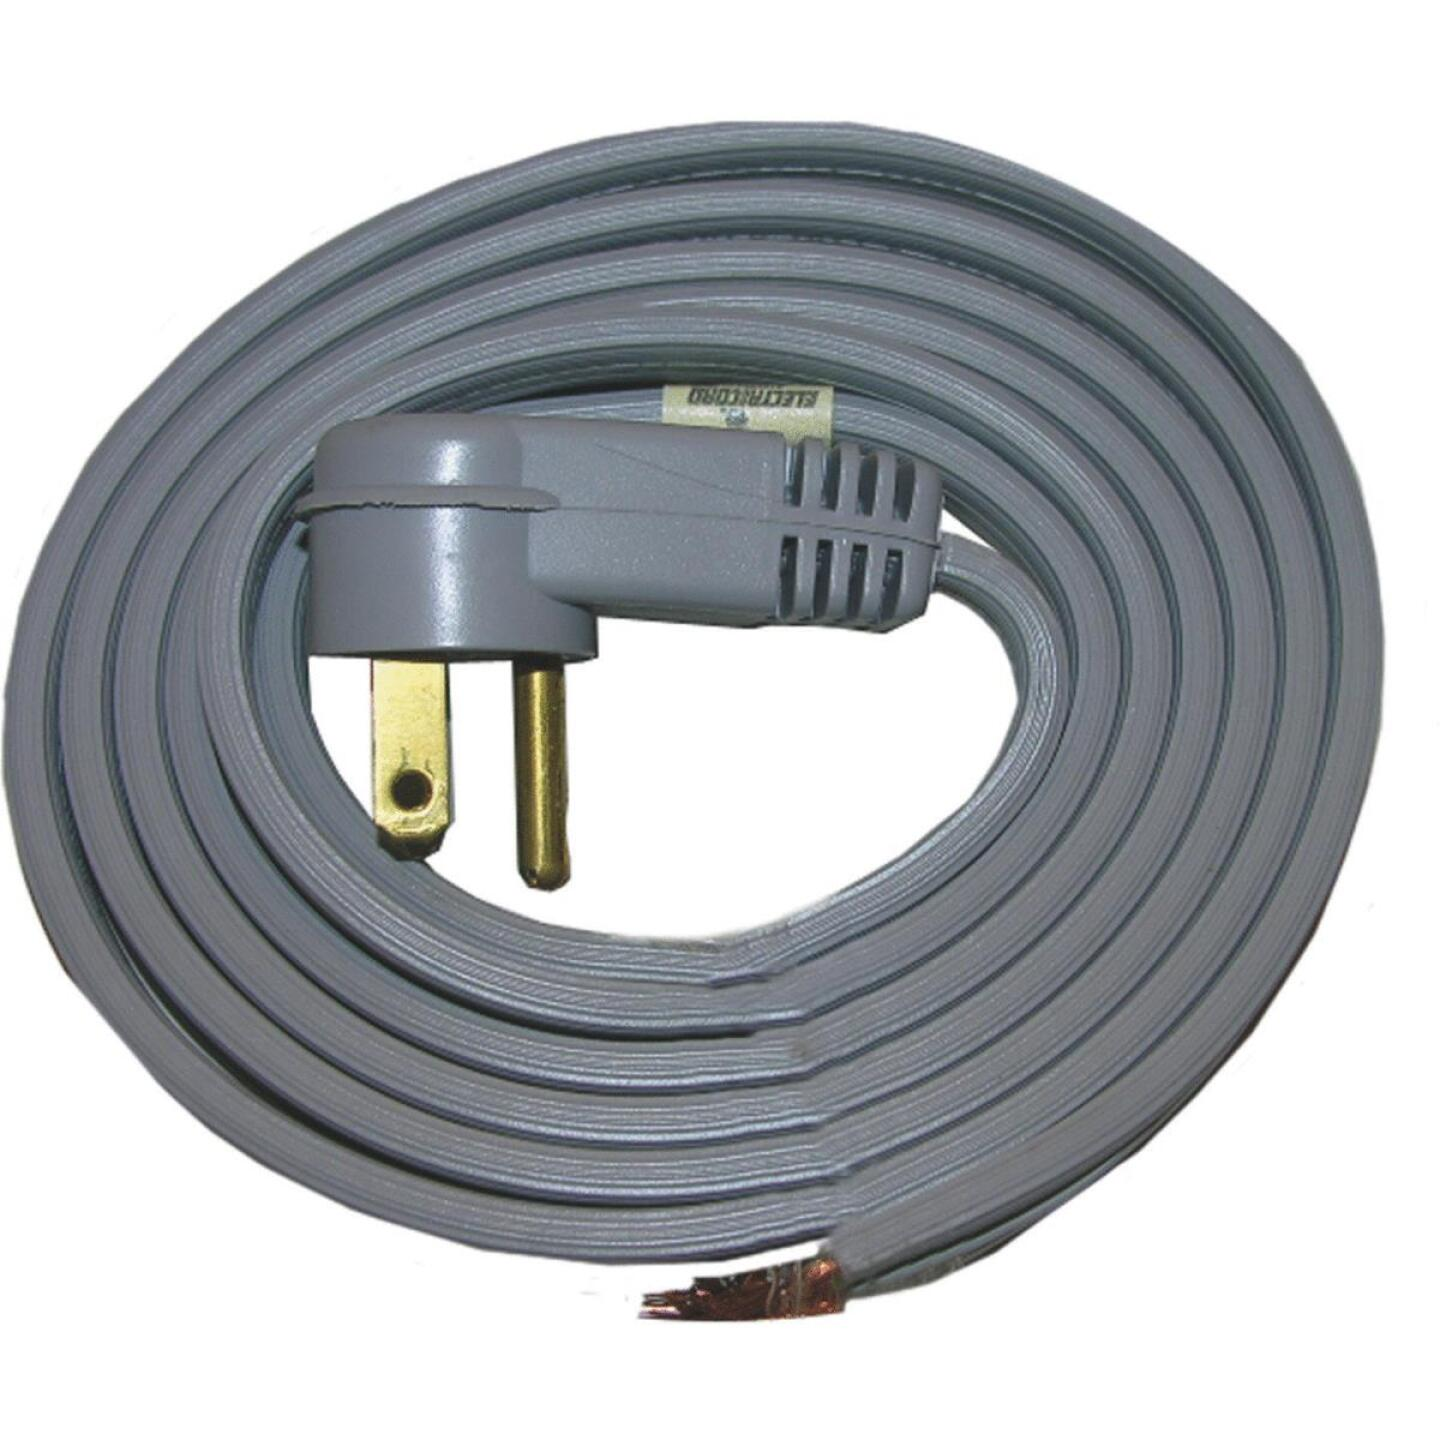 Lasco 6 Ft. 14/3 15A Dishwasher Cord Image 1